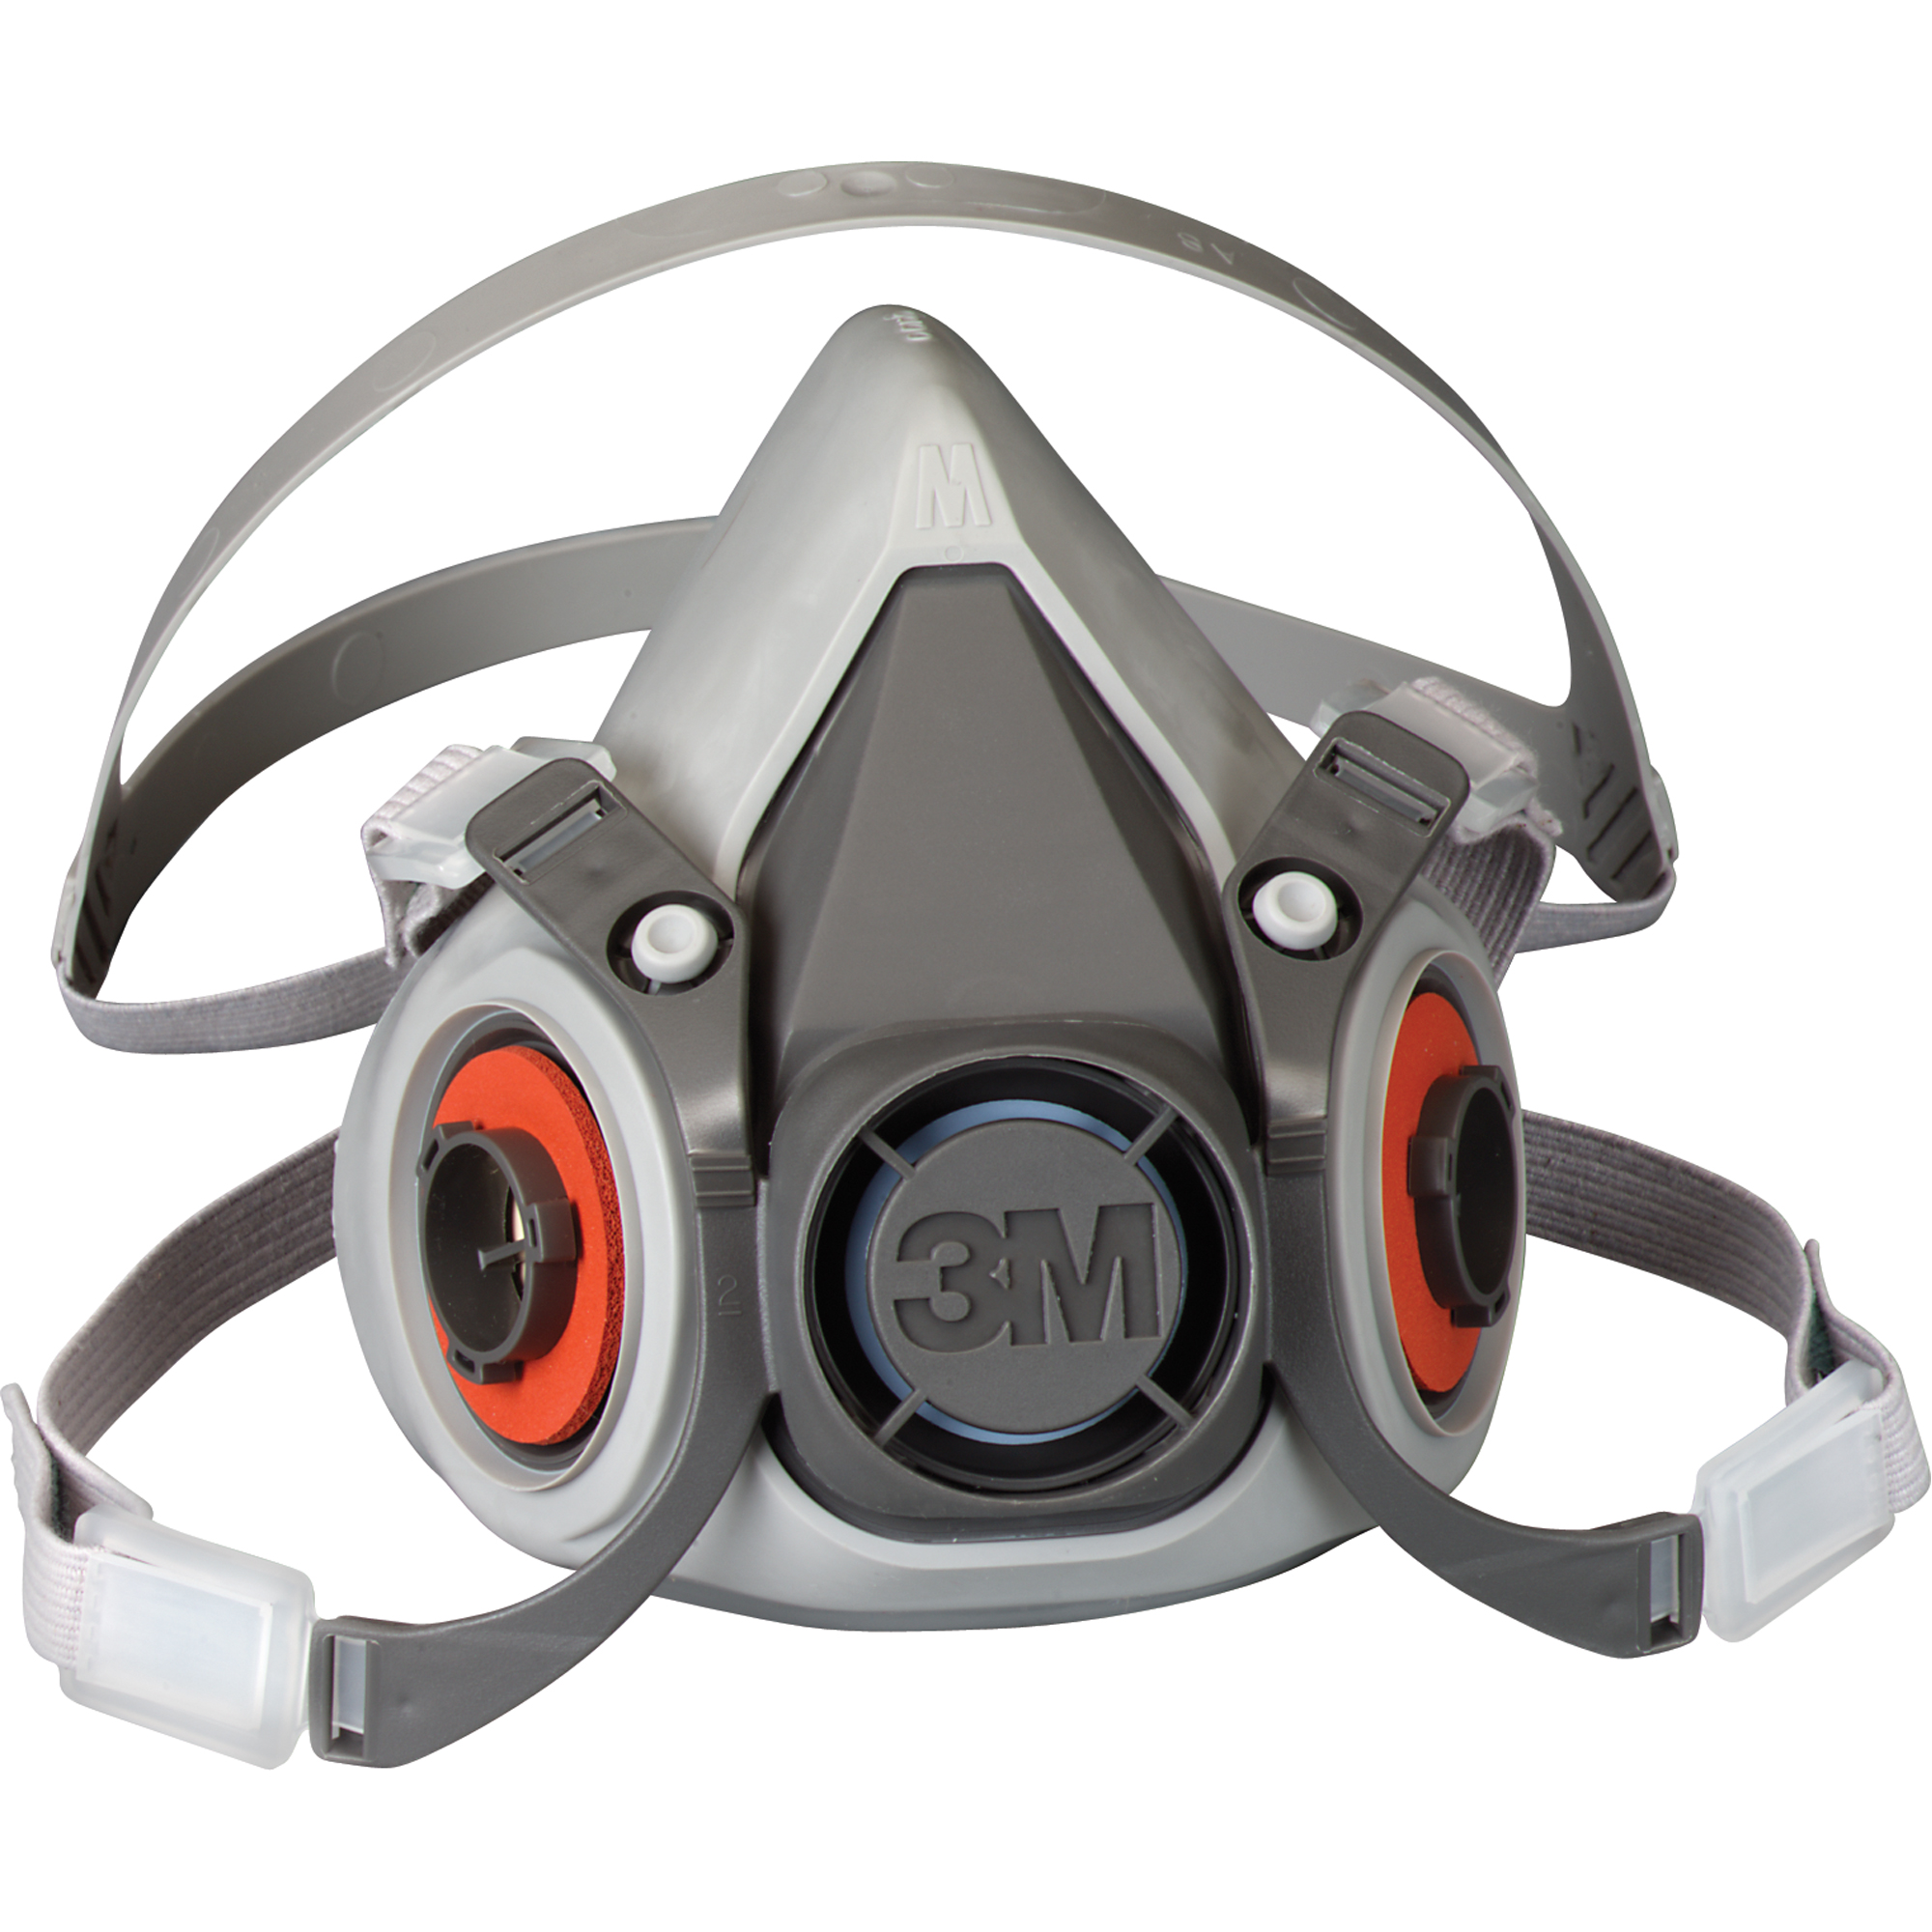 3M 6000 Series Half Facepiece Reusable Respirator Mask (Large)